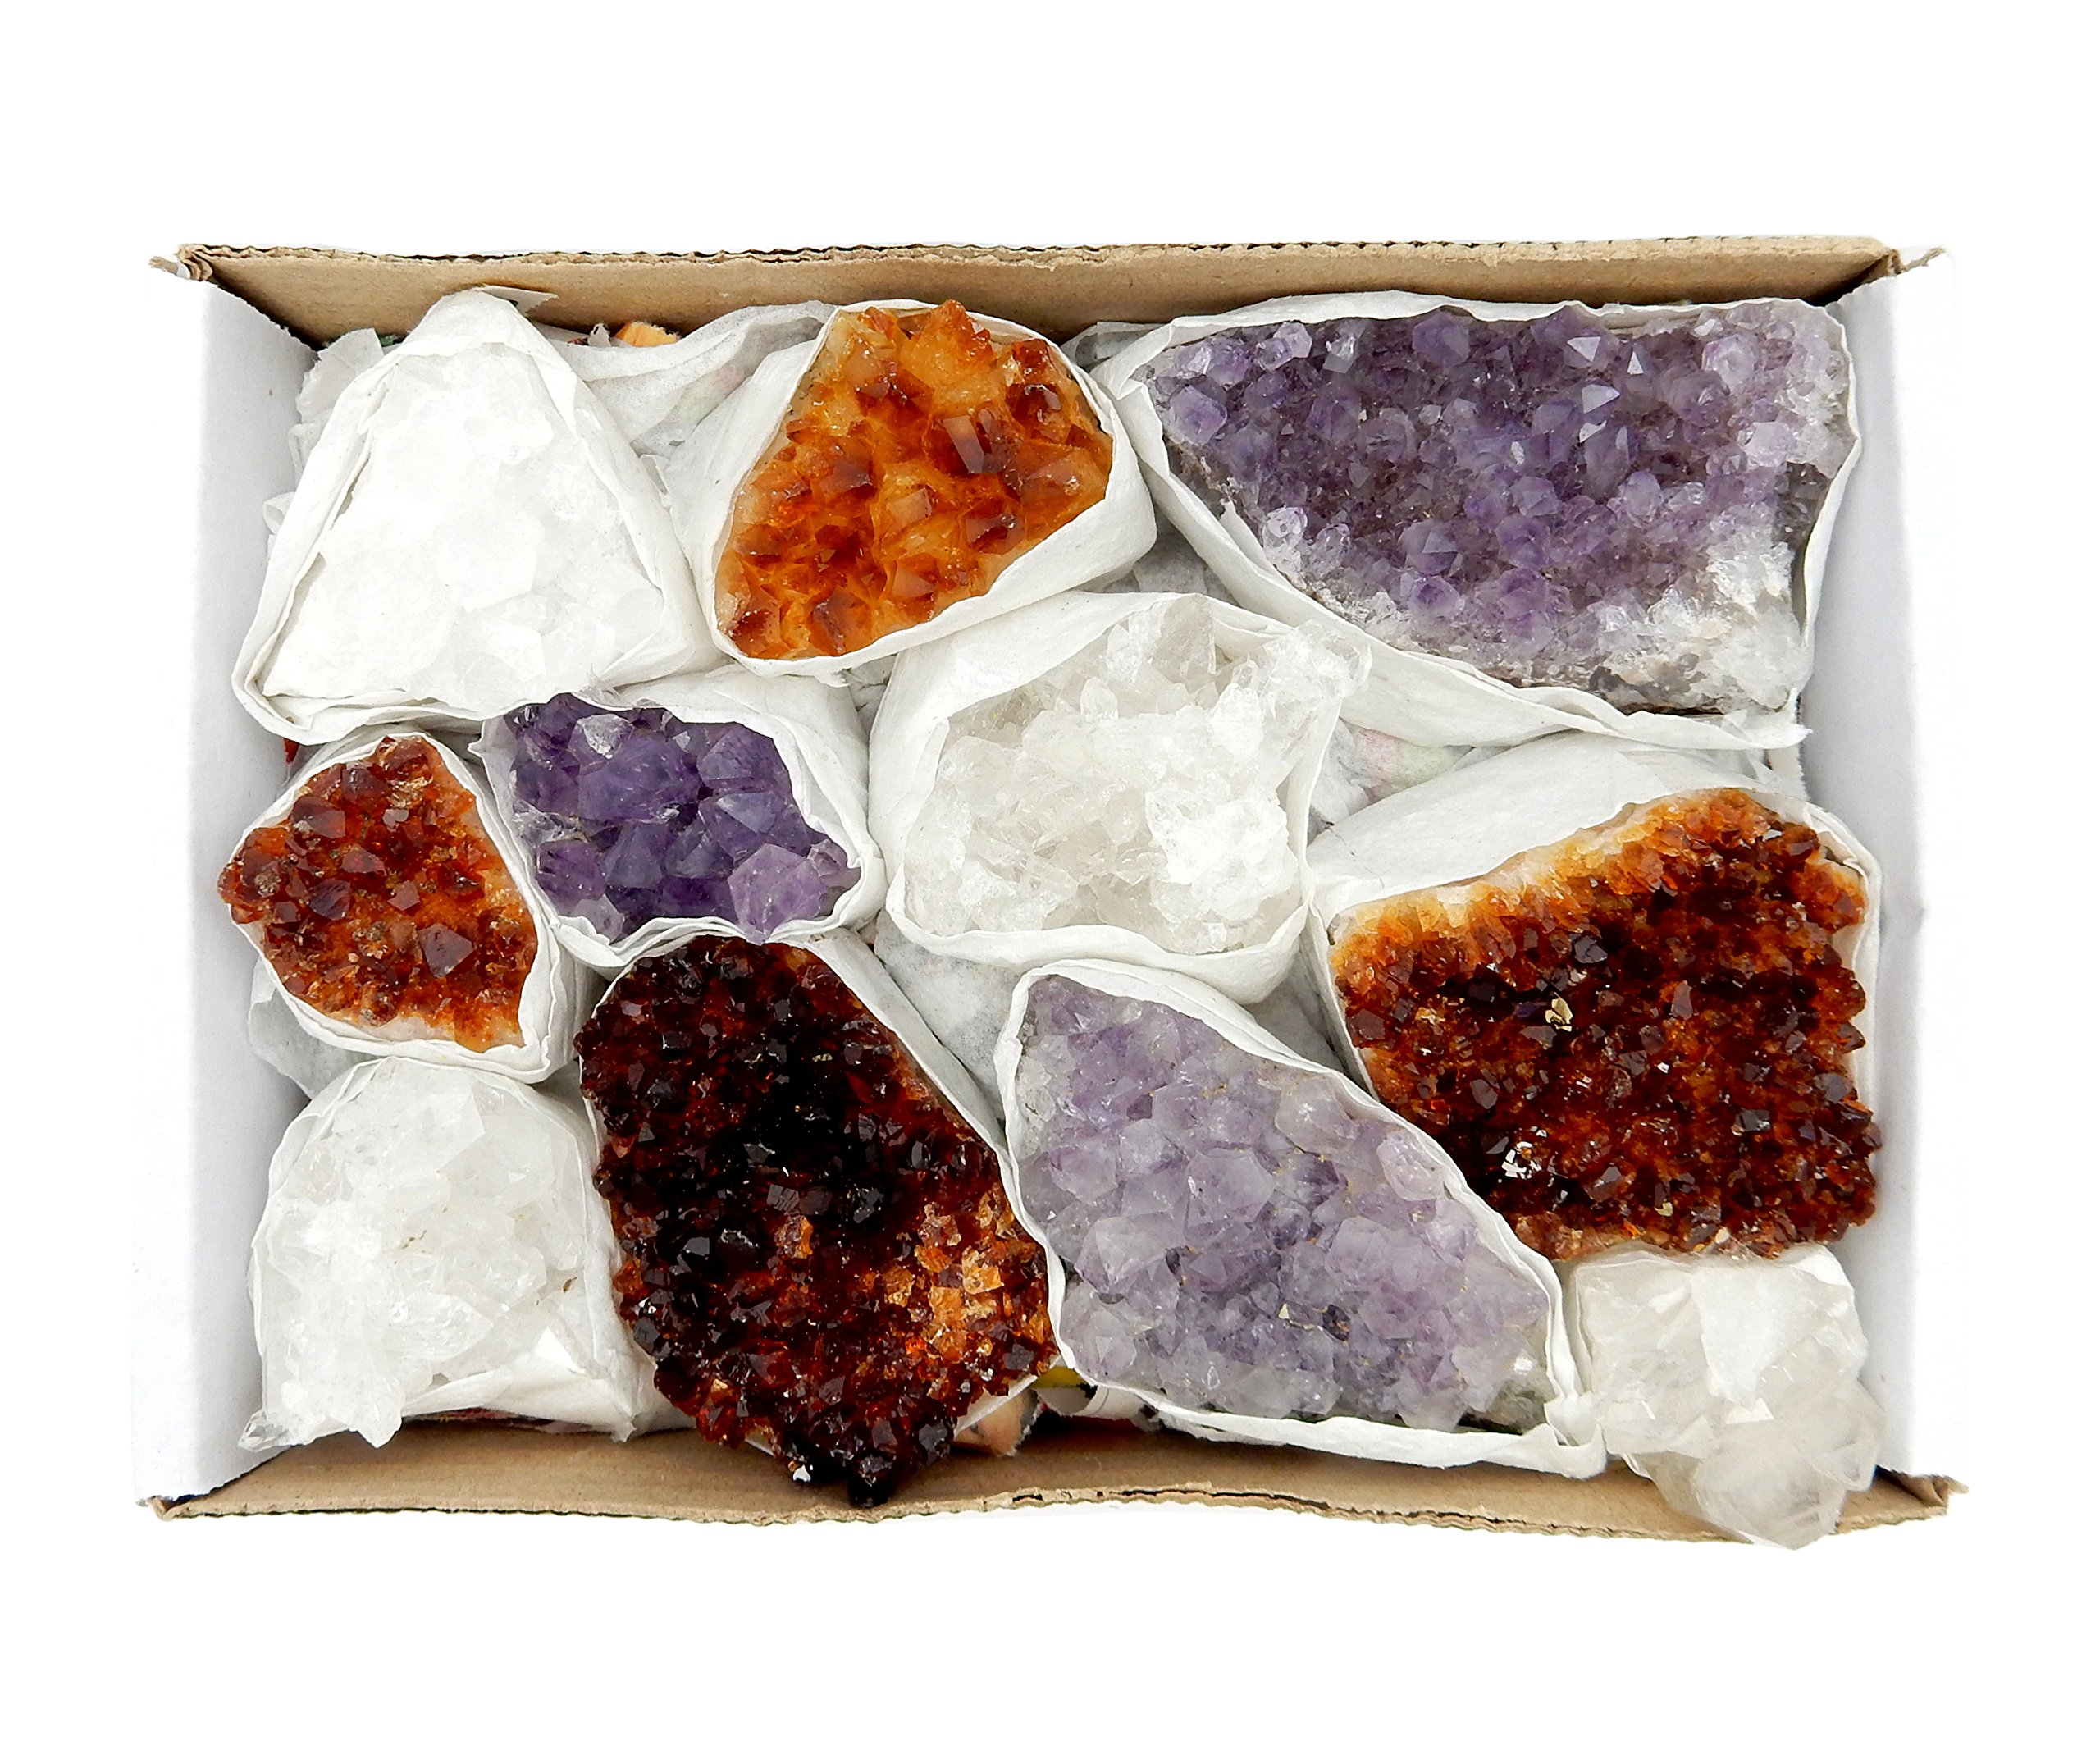 Amethyst Citrine and Crystal Cluster Flat Box w/Exclusive Rock Paradise COA by Rock Paradise Stones